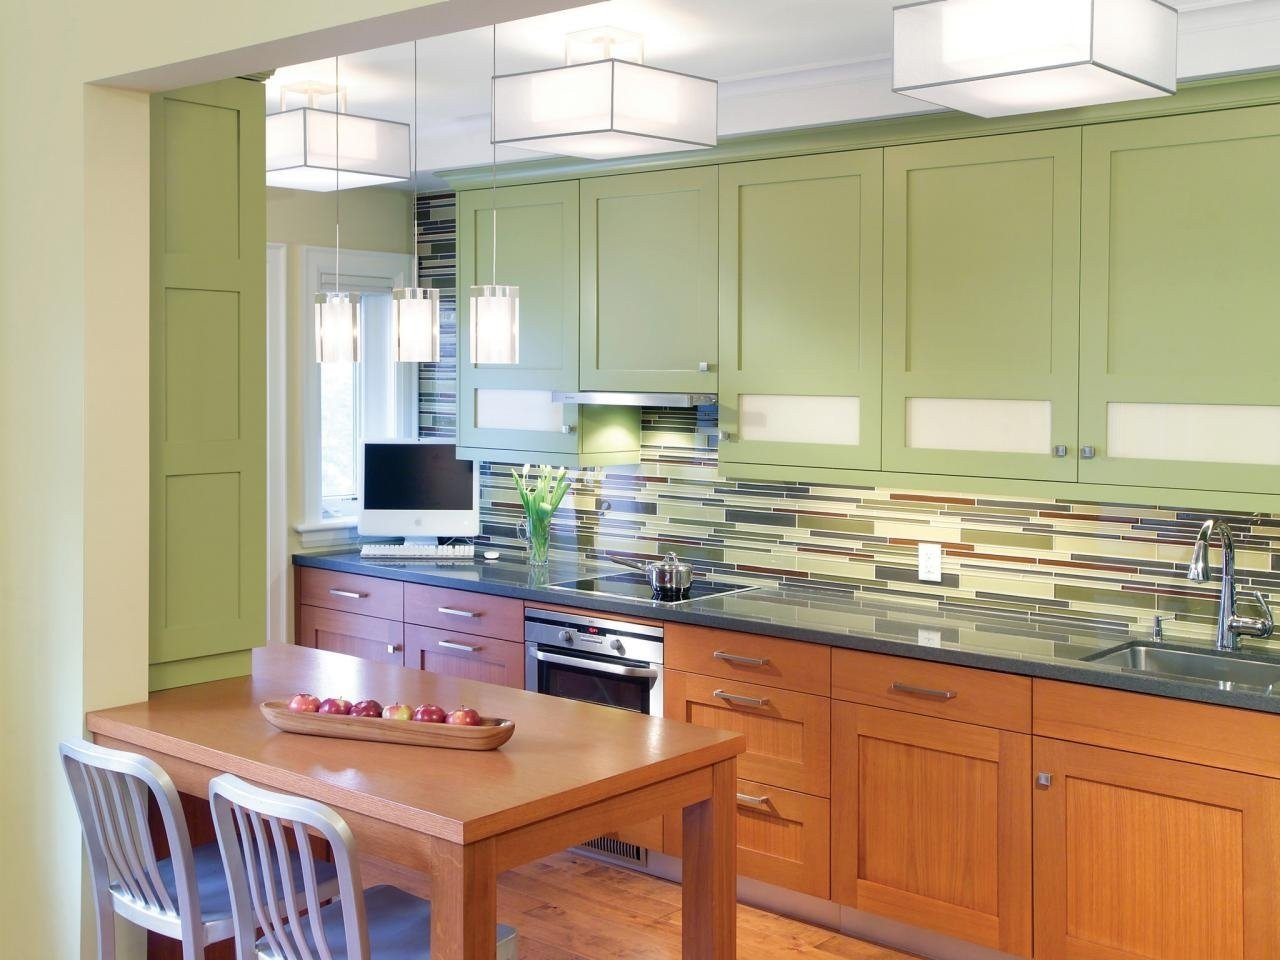 Best ideas about DIY Kitchen Cabinets Paint . Save or Pin Secret Easy Diy Painting Kitchen Cabinets — The Decoras Now.